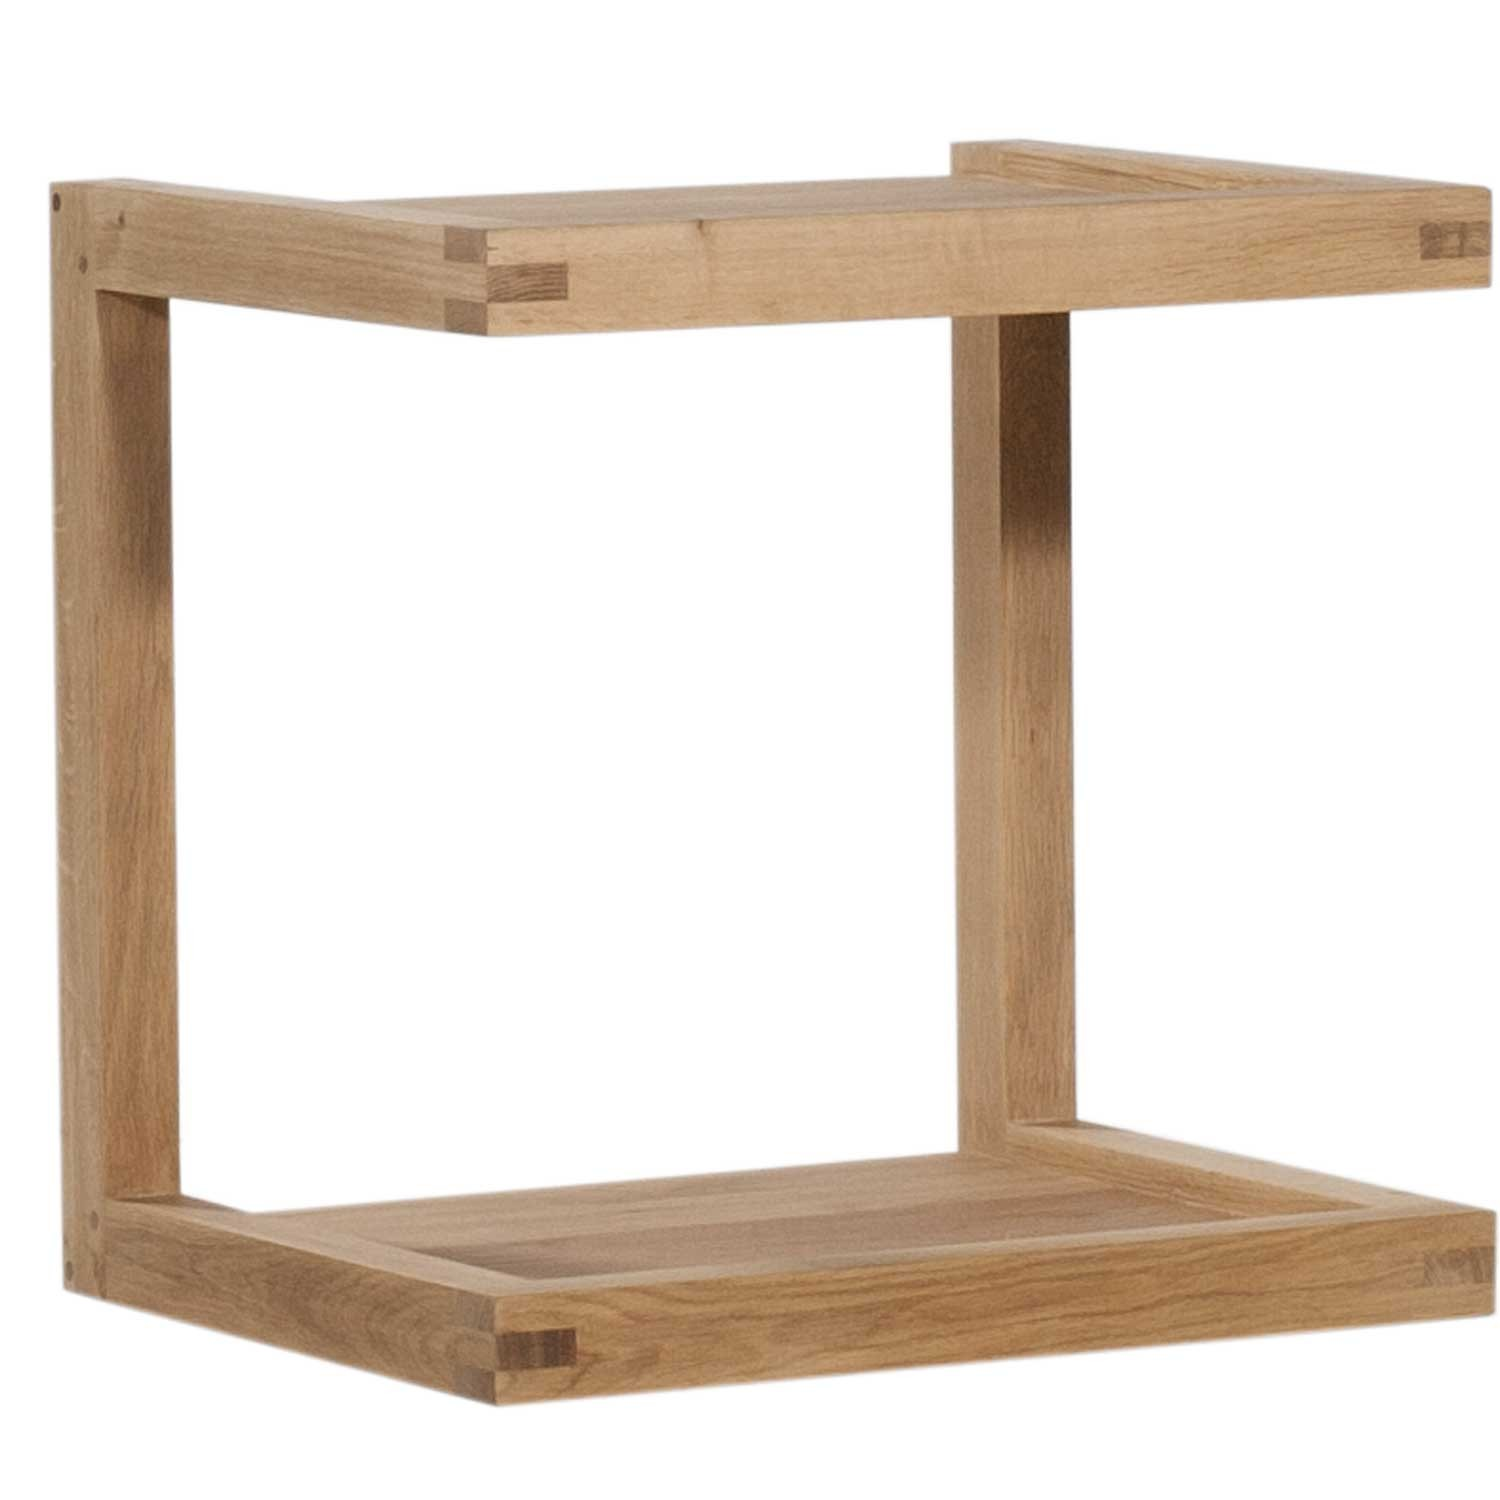 Ethnicraft oak frame sofa side table for Sofa side table